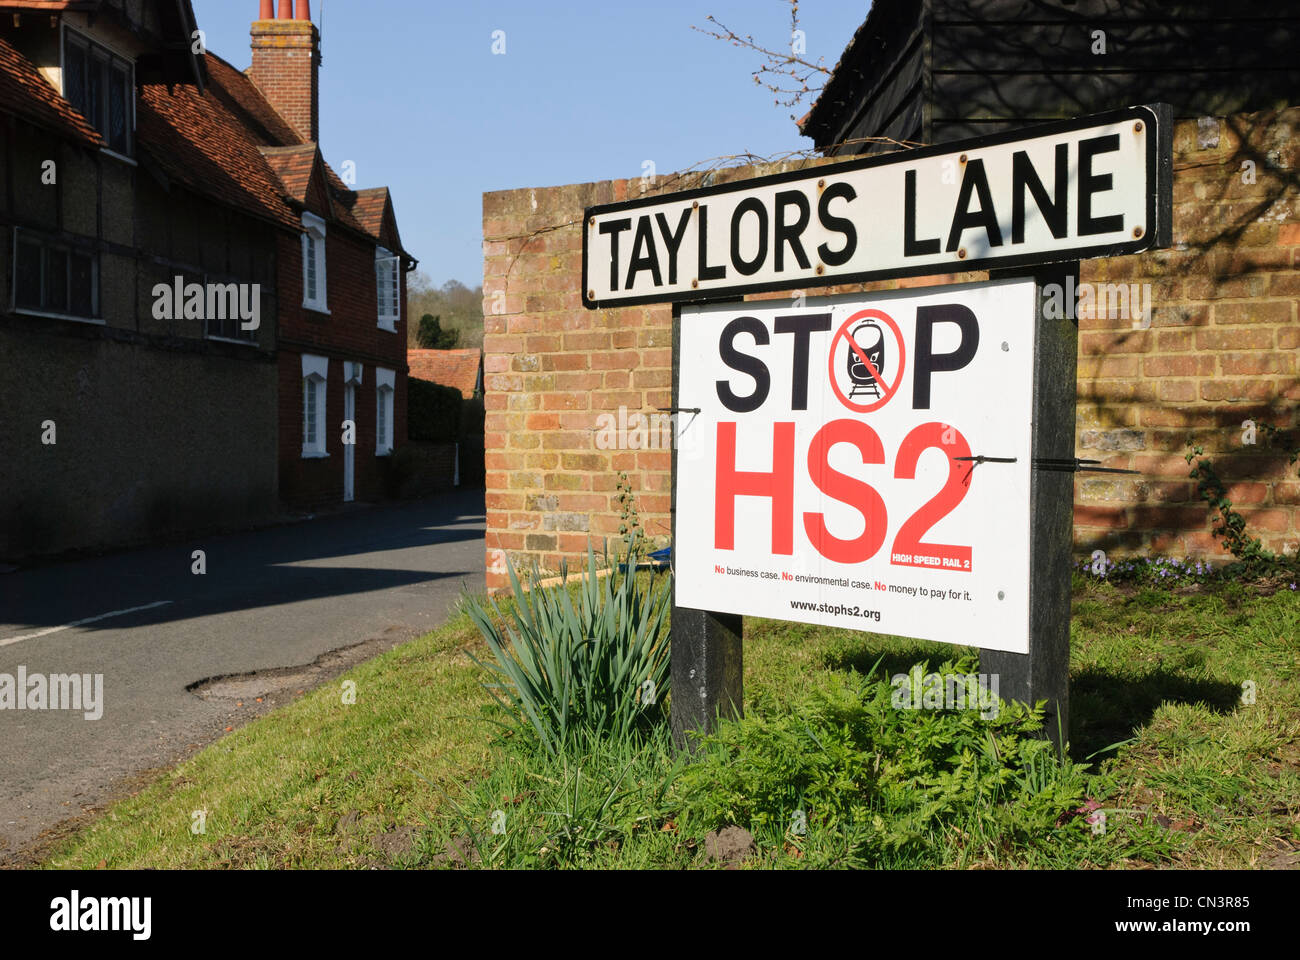 Protest sign against proposed High Speed Rail link between London and Birmingham. This is Little Missenden, Bucks. - Stock Image